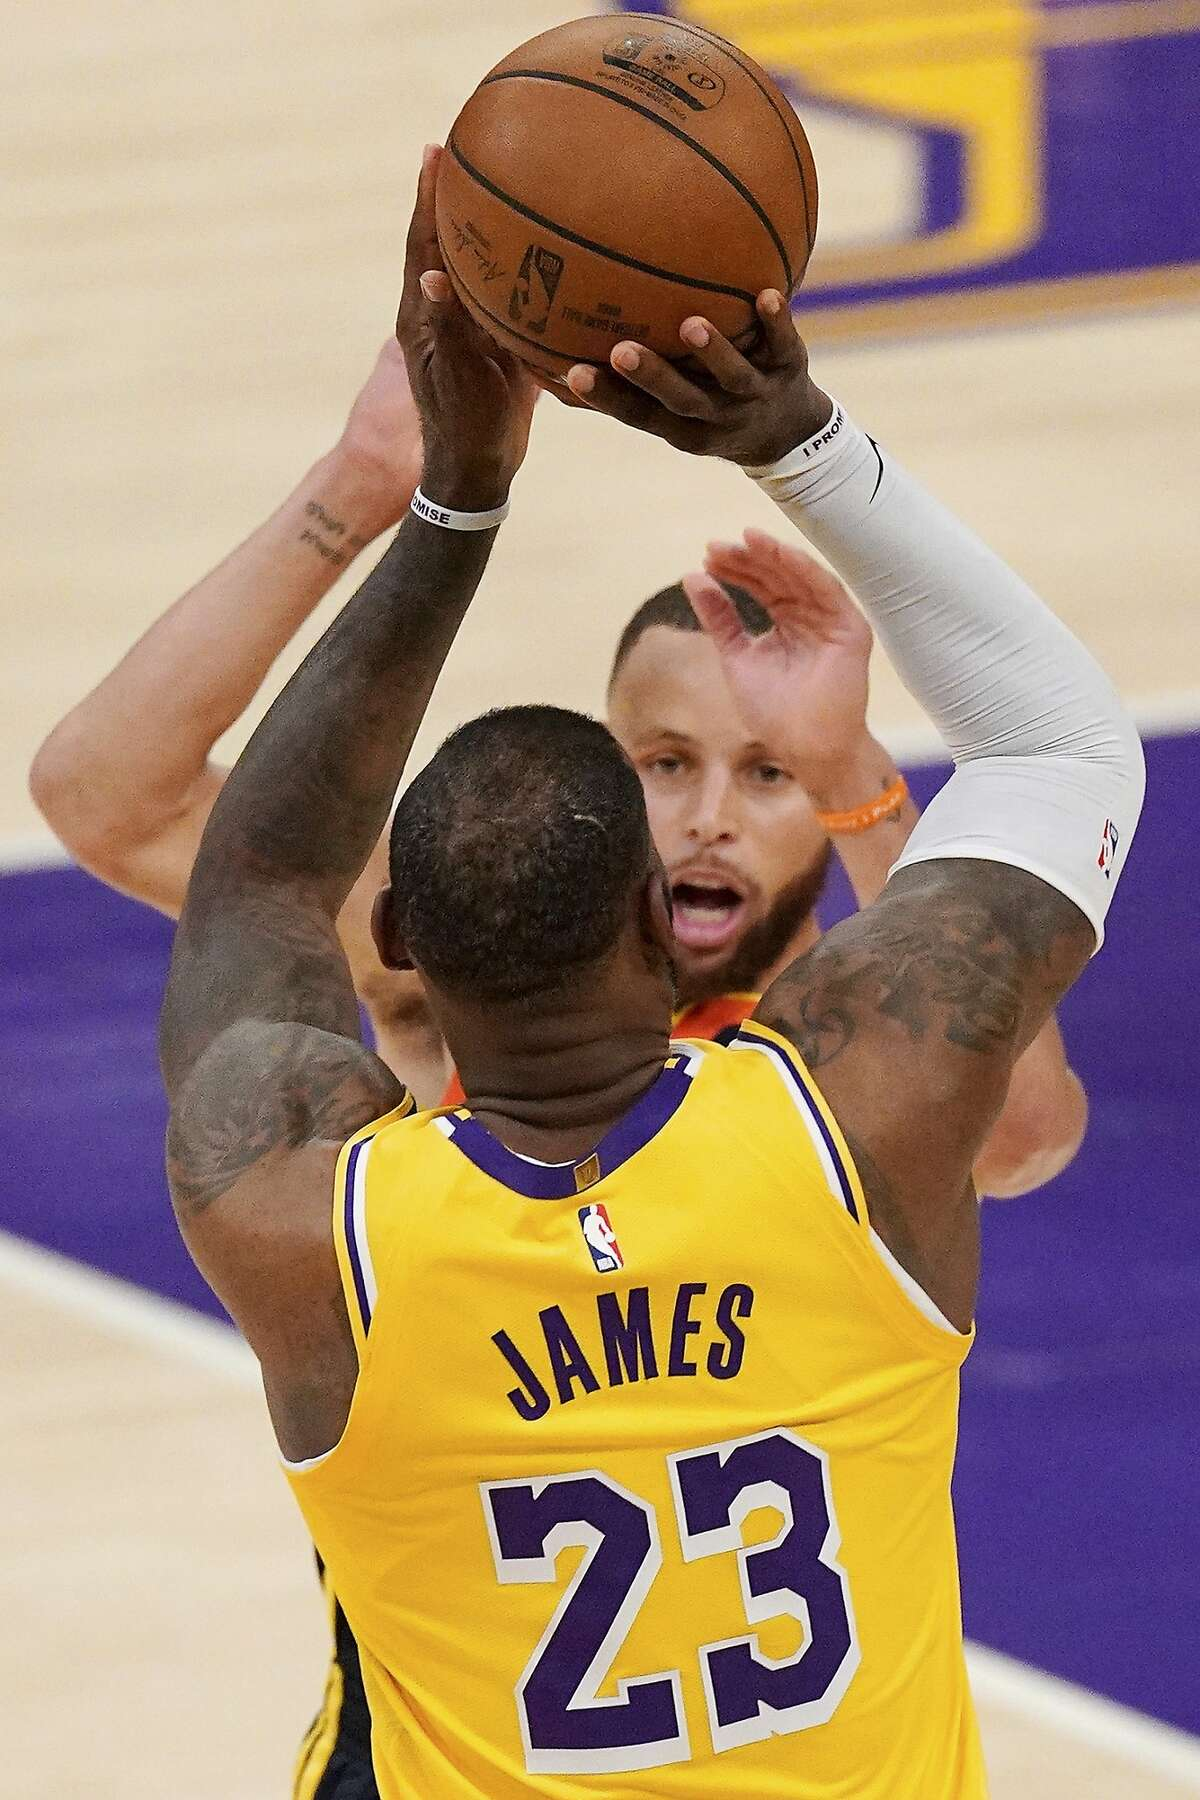 Los Angeles Lakers forward LeBron James, below, shoots and makes a three-point shot as Golden State Warriors guard Stephen Curry defends with one minute left in an NBA basketball Western Conference Play-In game Wednesday, May 19, 2021, in Los Angeles. (AP Photo/Mark J. Terrill)